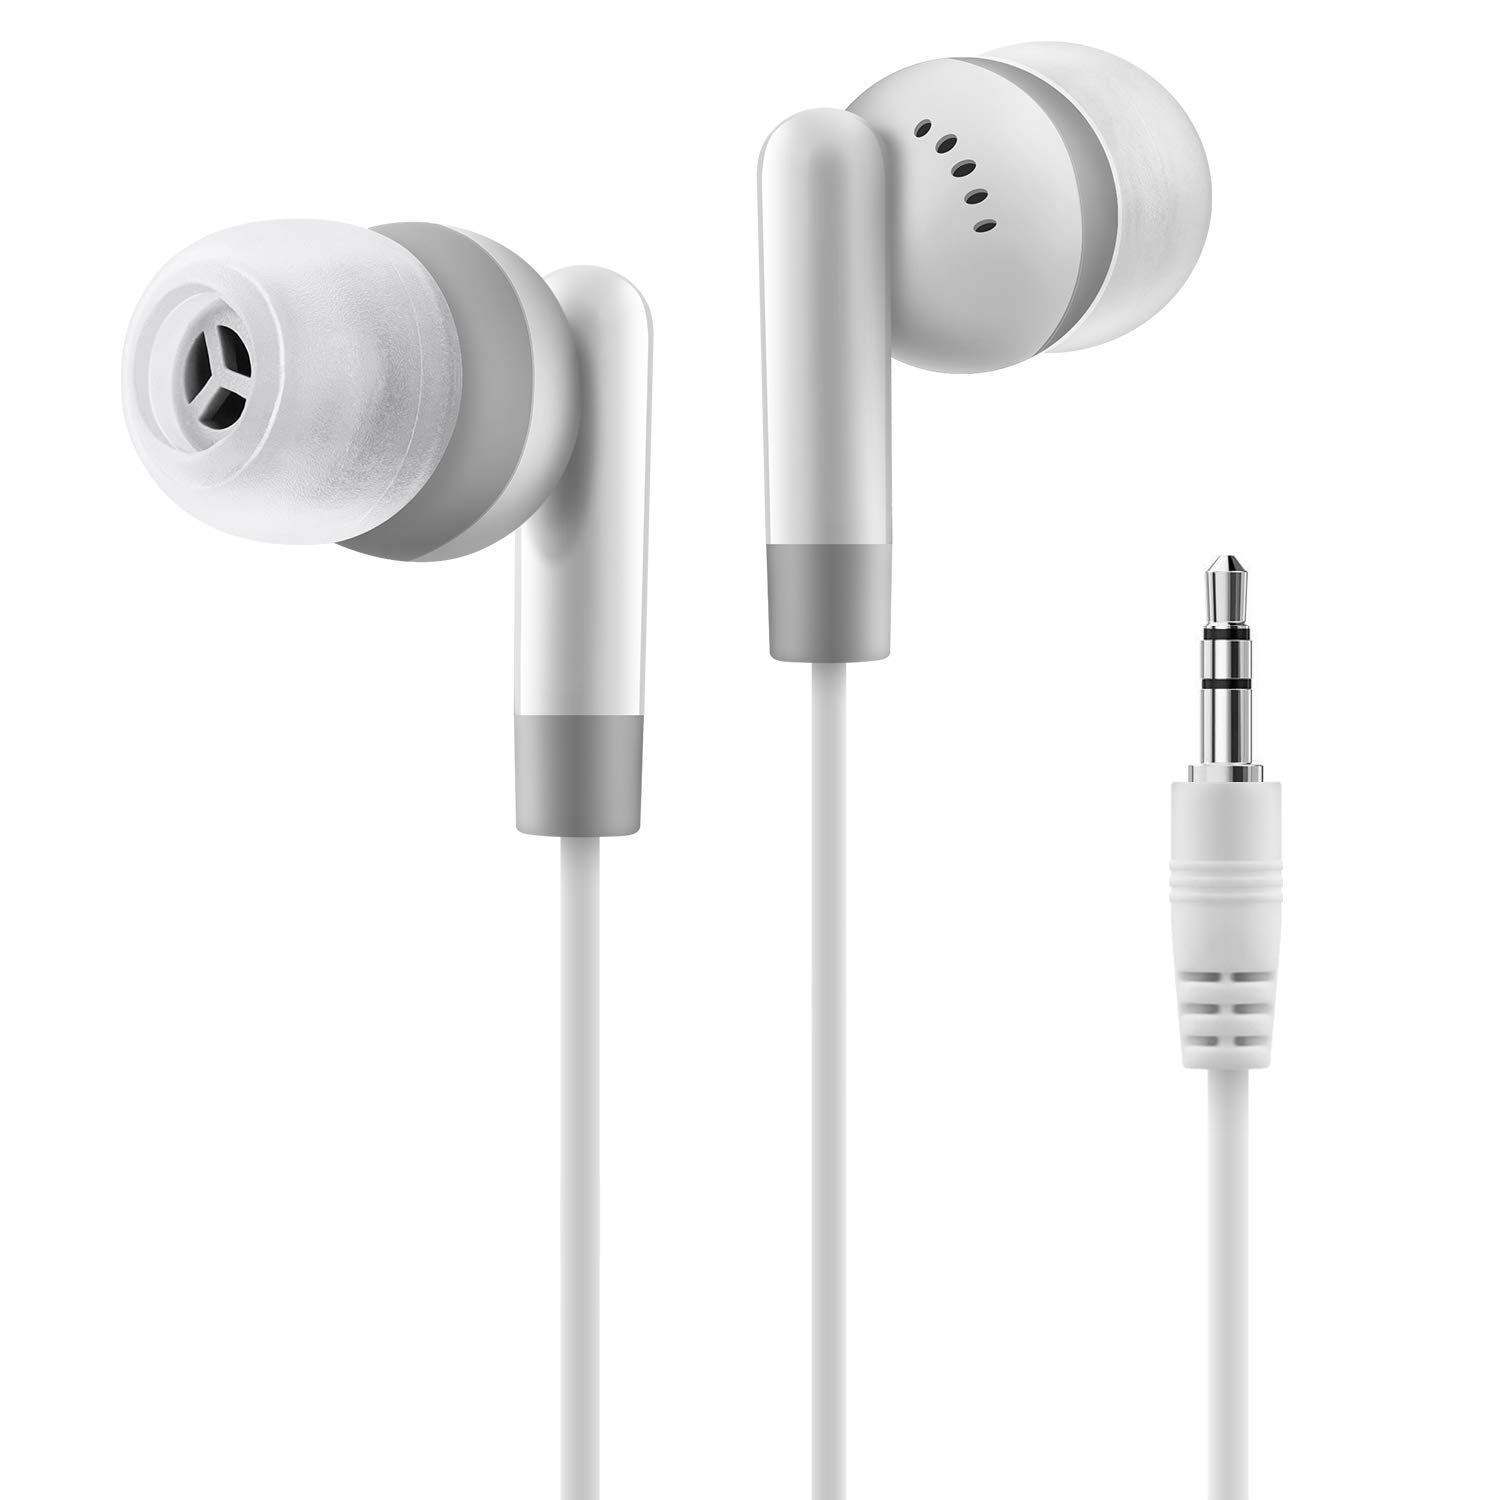 Earbuds Earphones in Ear Headphones Earbuds for Music Wired Headphones